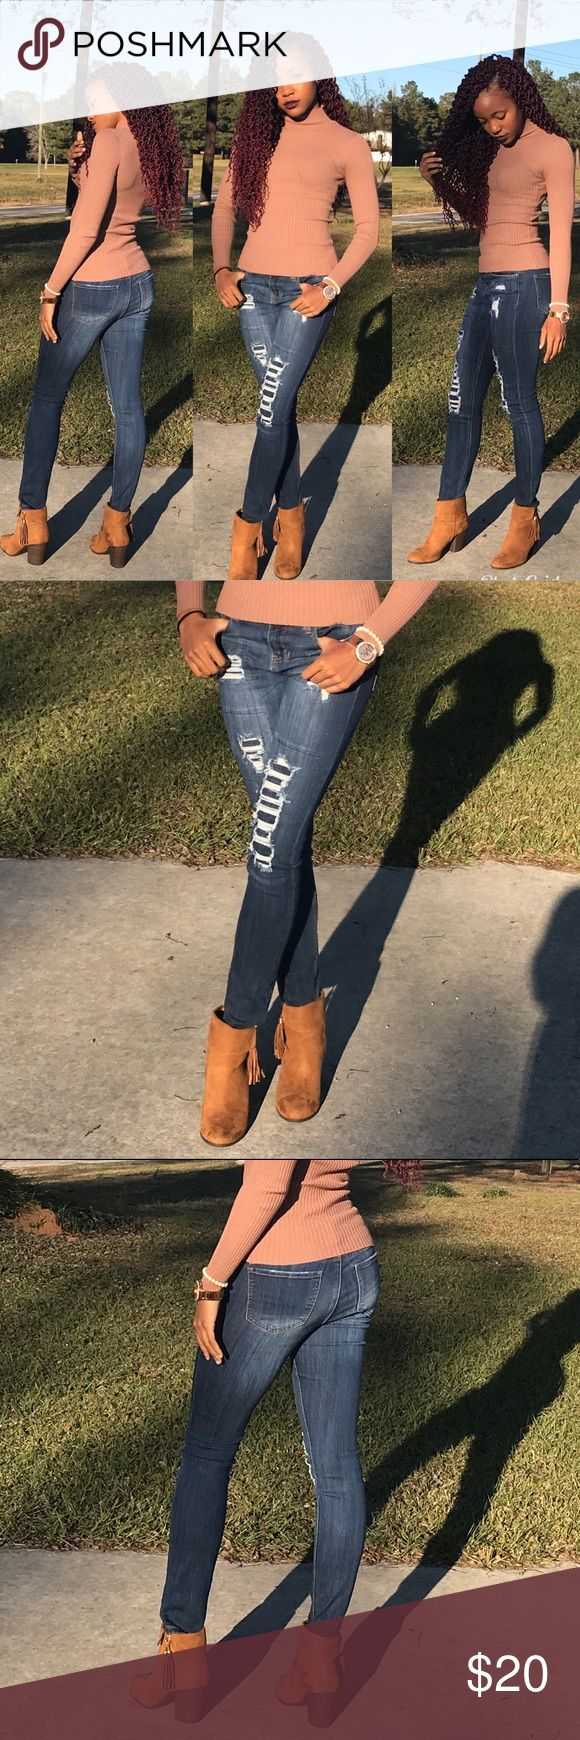 Dark Blue Washed Distressed Skinny Jeans • Midrise • Skinny Fit Hippie Laundry Pants Skinny